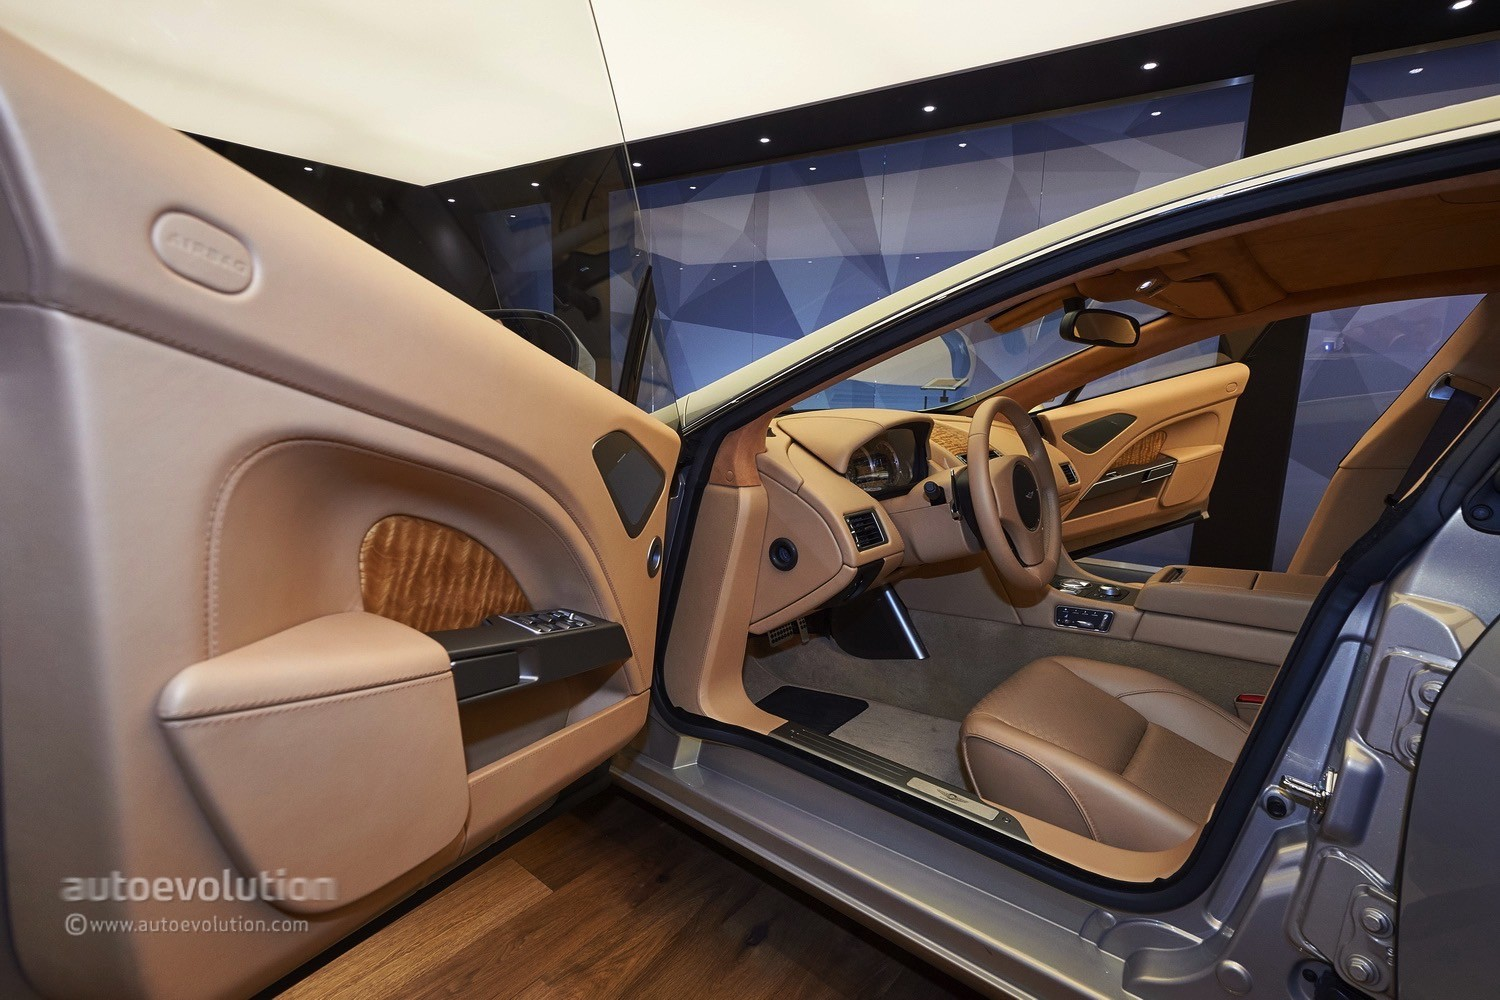 Aston Martin Lagonda Taraf Is As Queer As A Clockwork Make Your Own Beautiful  HD Wallpapers, Images Over 1000+ [ralydesign.ml]